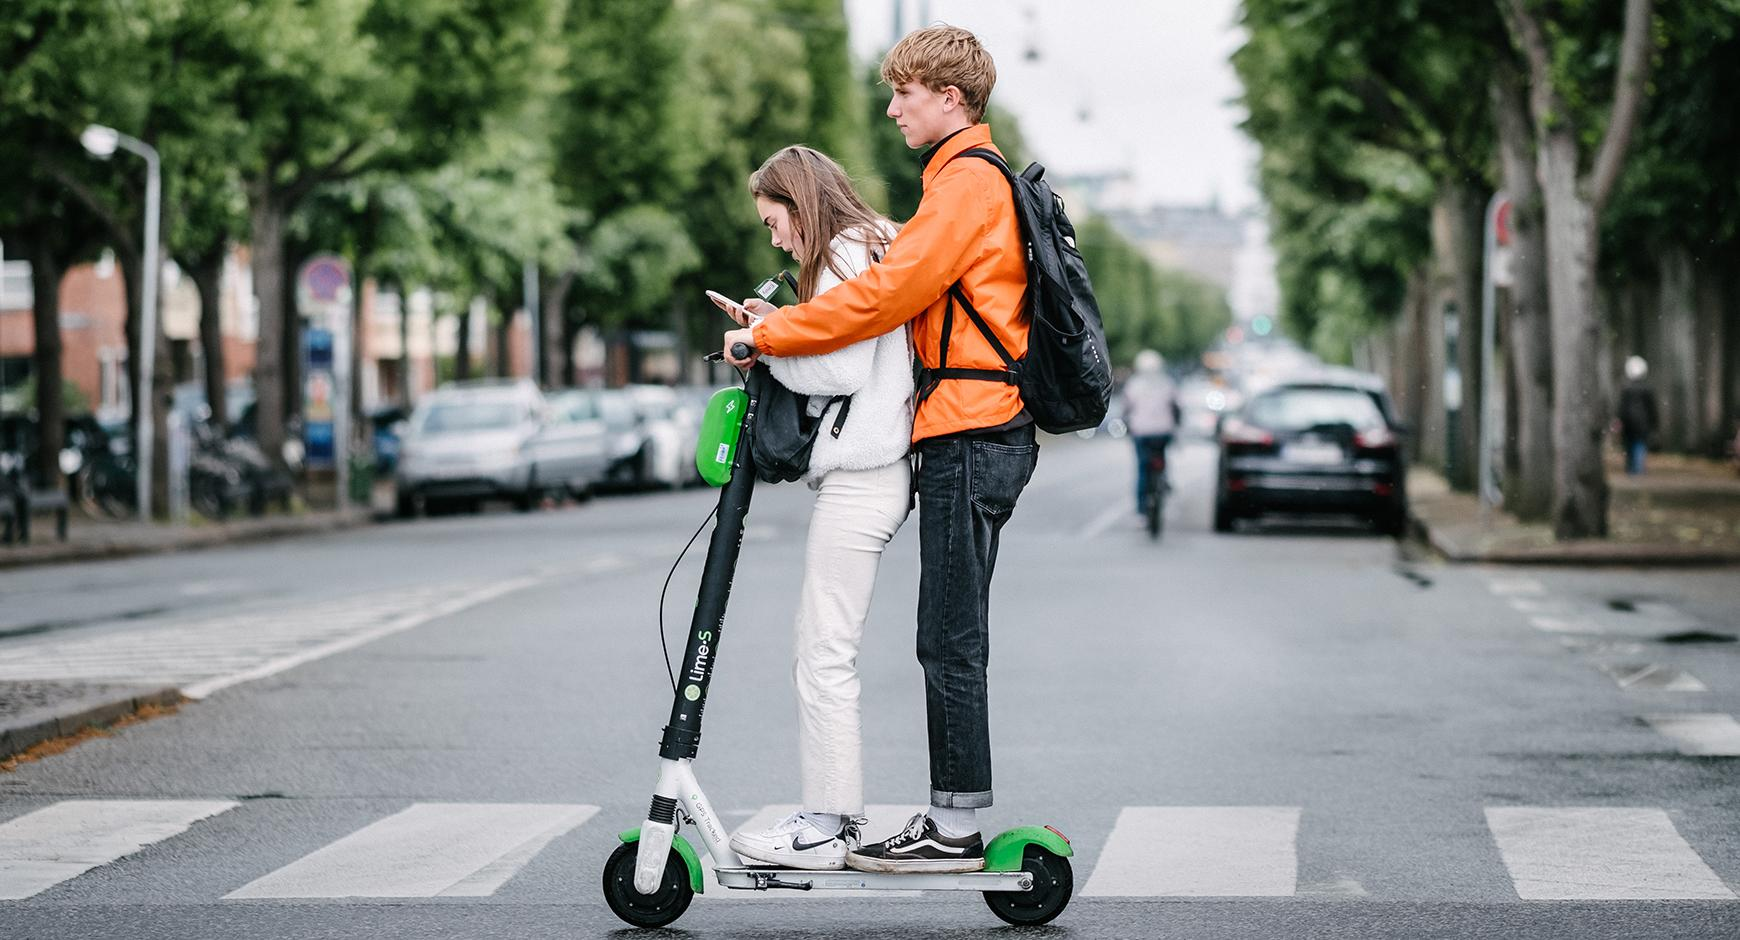 People riding on Electric Scooter. Photo Credit to Kristoffer Trolle from Copenhagen, Denmark, CC BY